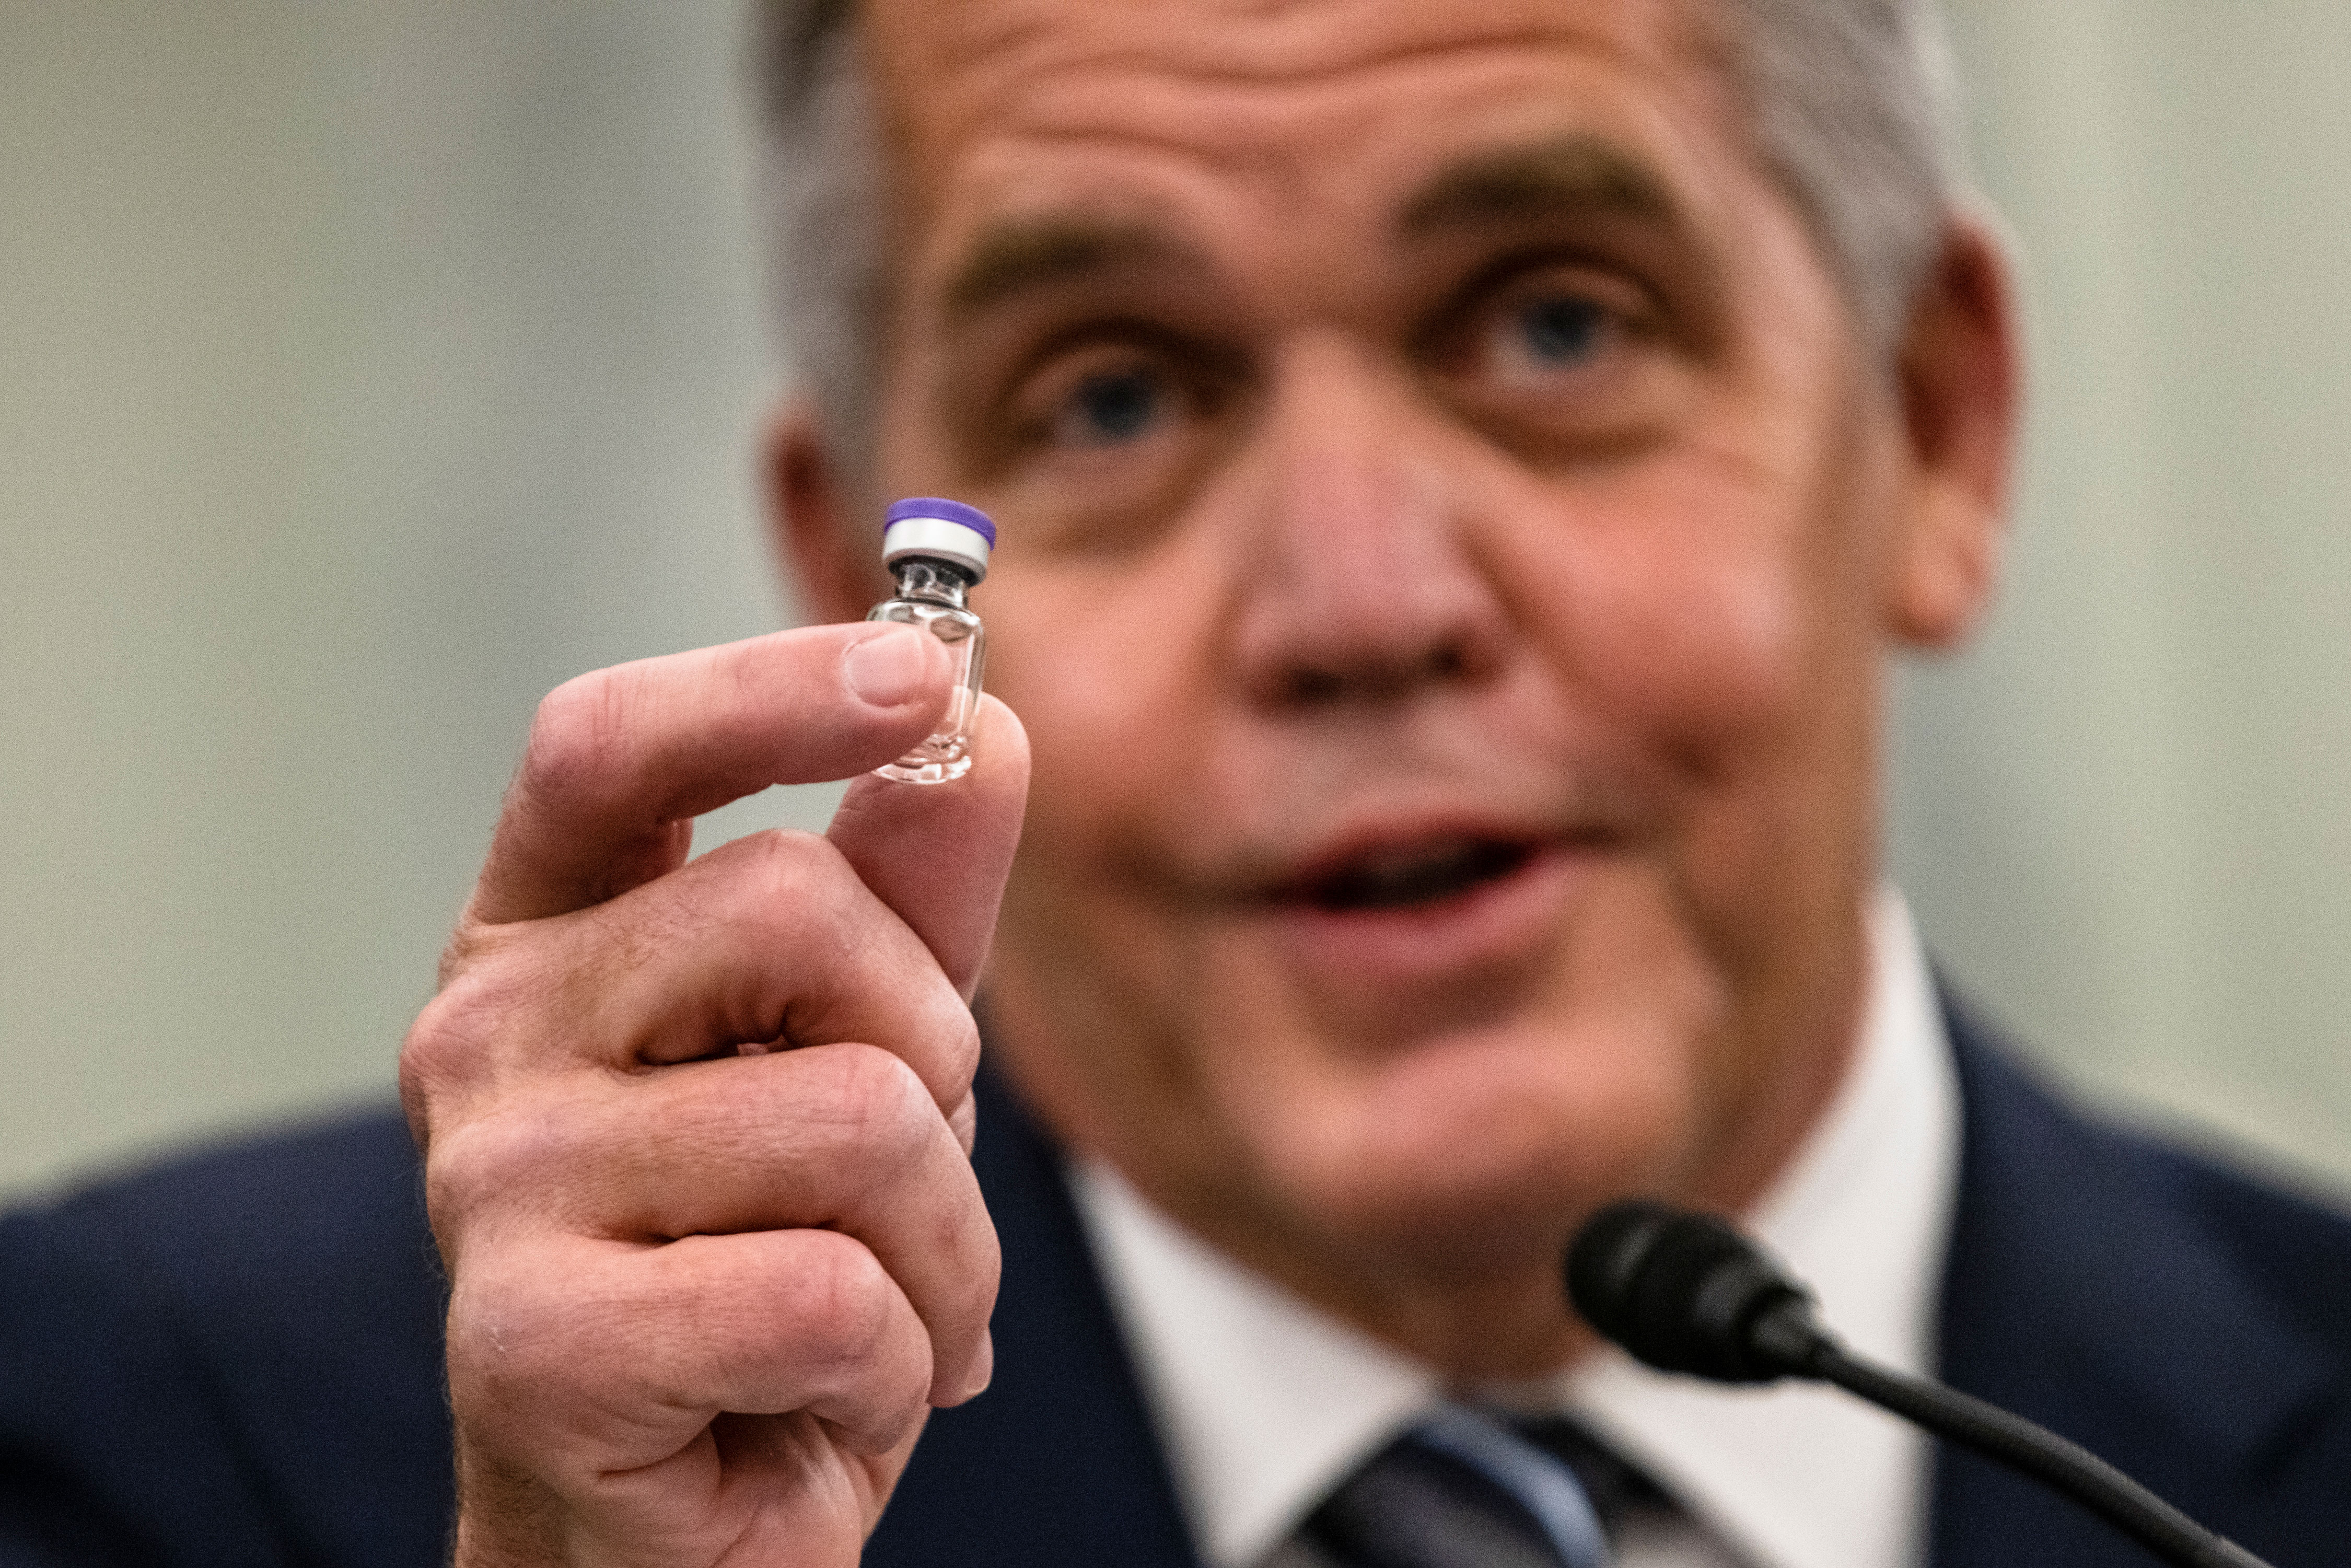 UPS President of Global Healthcare Wesley Wheeler holds an example of the vial that will be used to transport the Pfizer COVID-19 vaccine as he speaks on Capitol Hill, on Thursday, December 10.